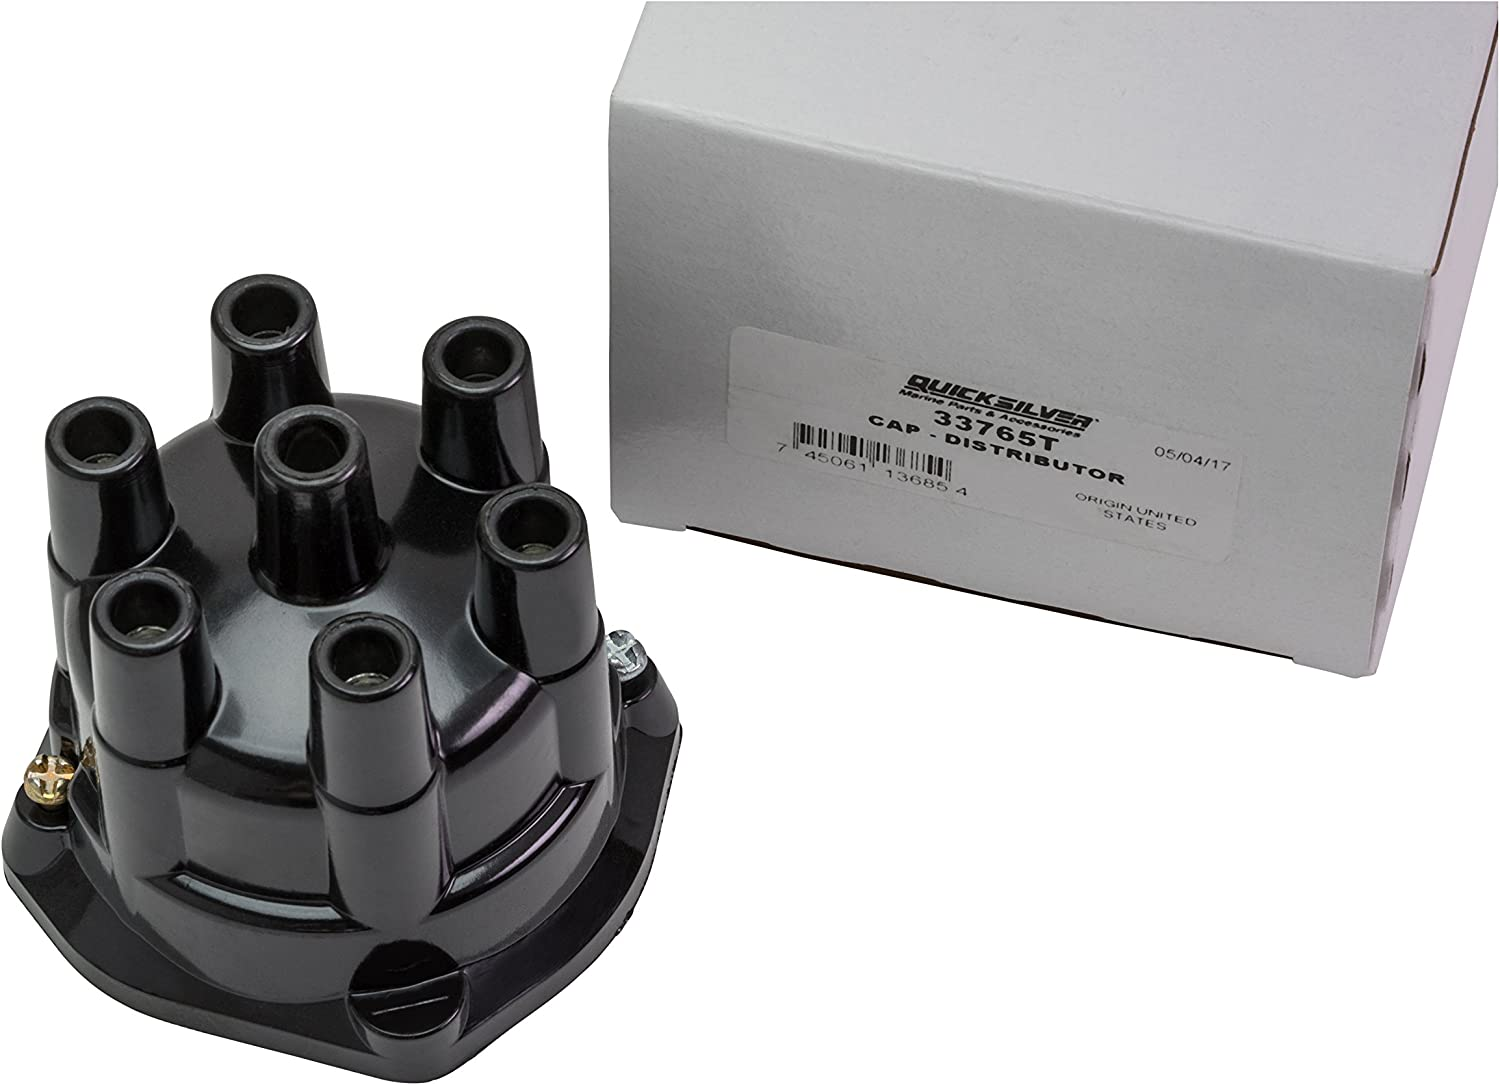 V-8 MerCruiser Engines by General Motors with Prestolite Conventional Ignition Systems Quicksilver 9766Q1 Distributor Cap